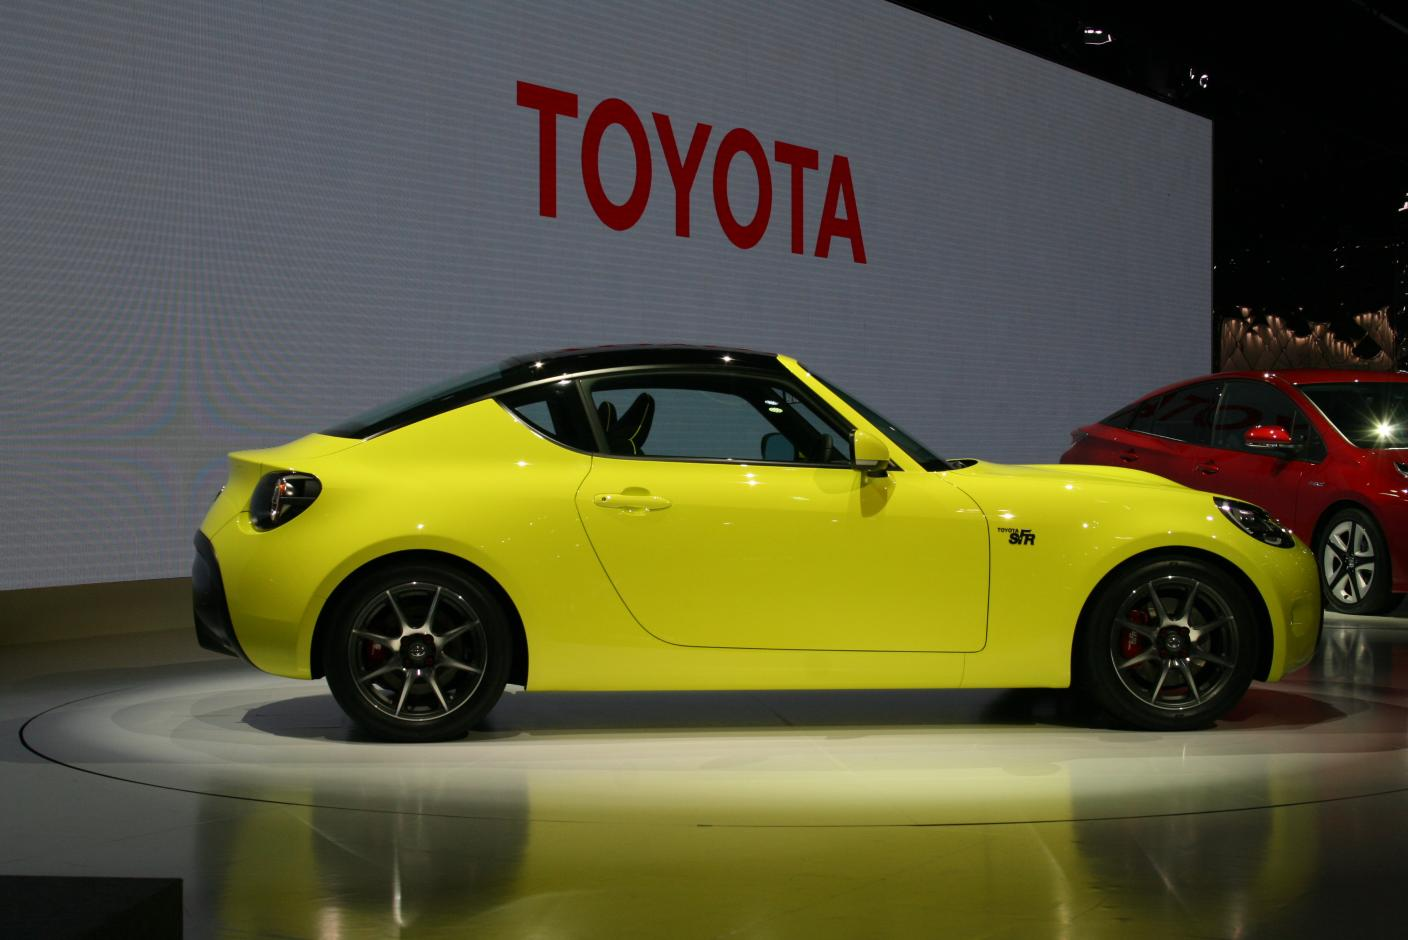 Toyota Celica Trademark Filing Sparks Rumors About New ...